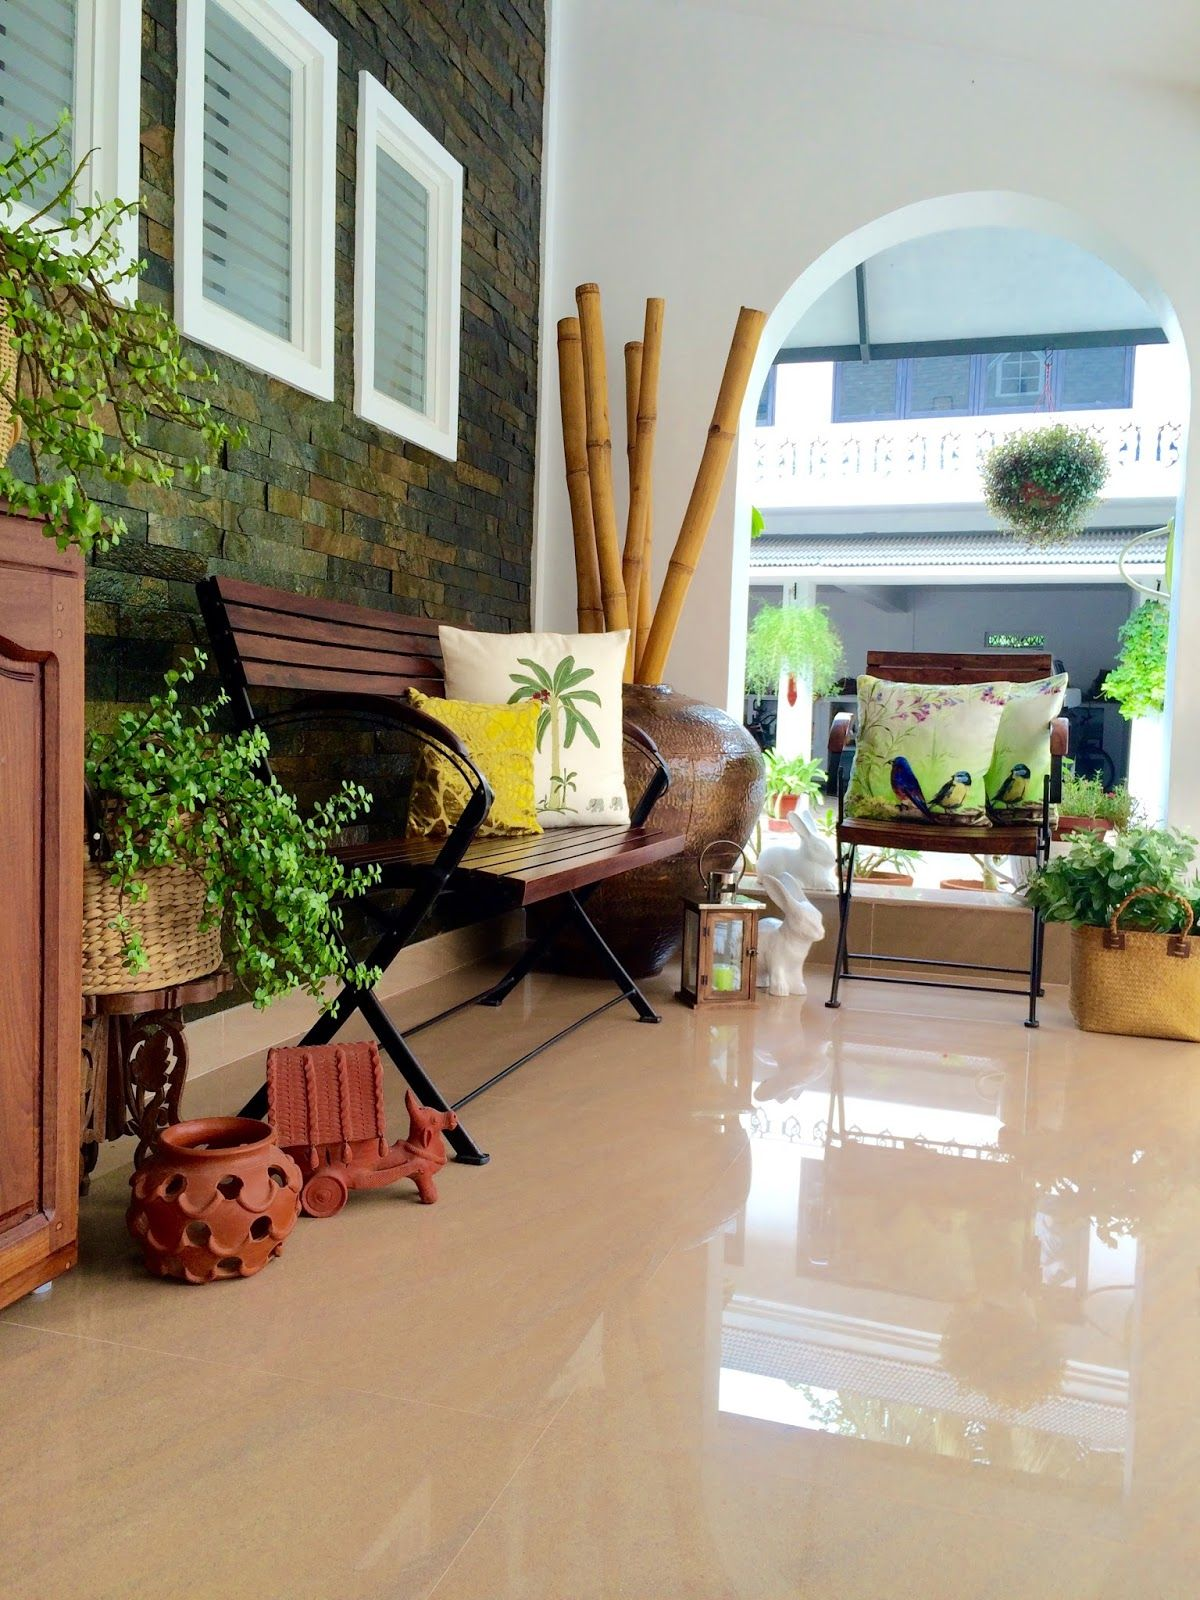 Home interior ideas kerala todayus home feature is a symphony of luxury and simplicity bindu